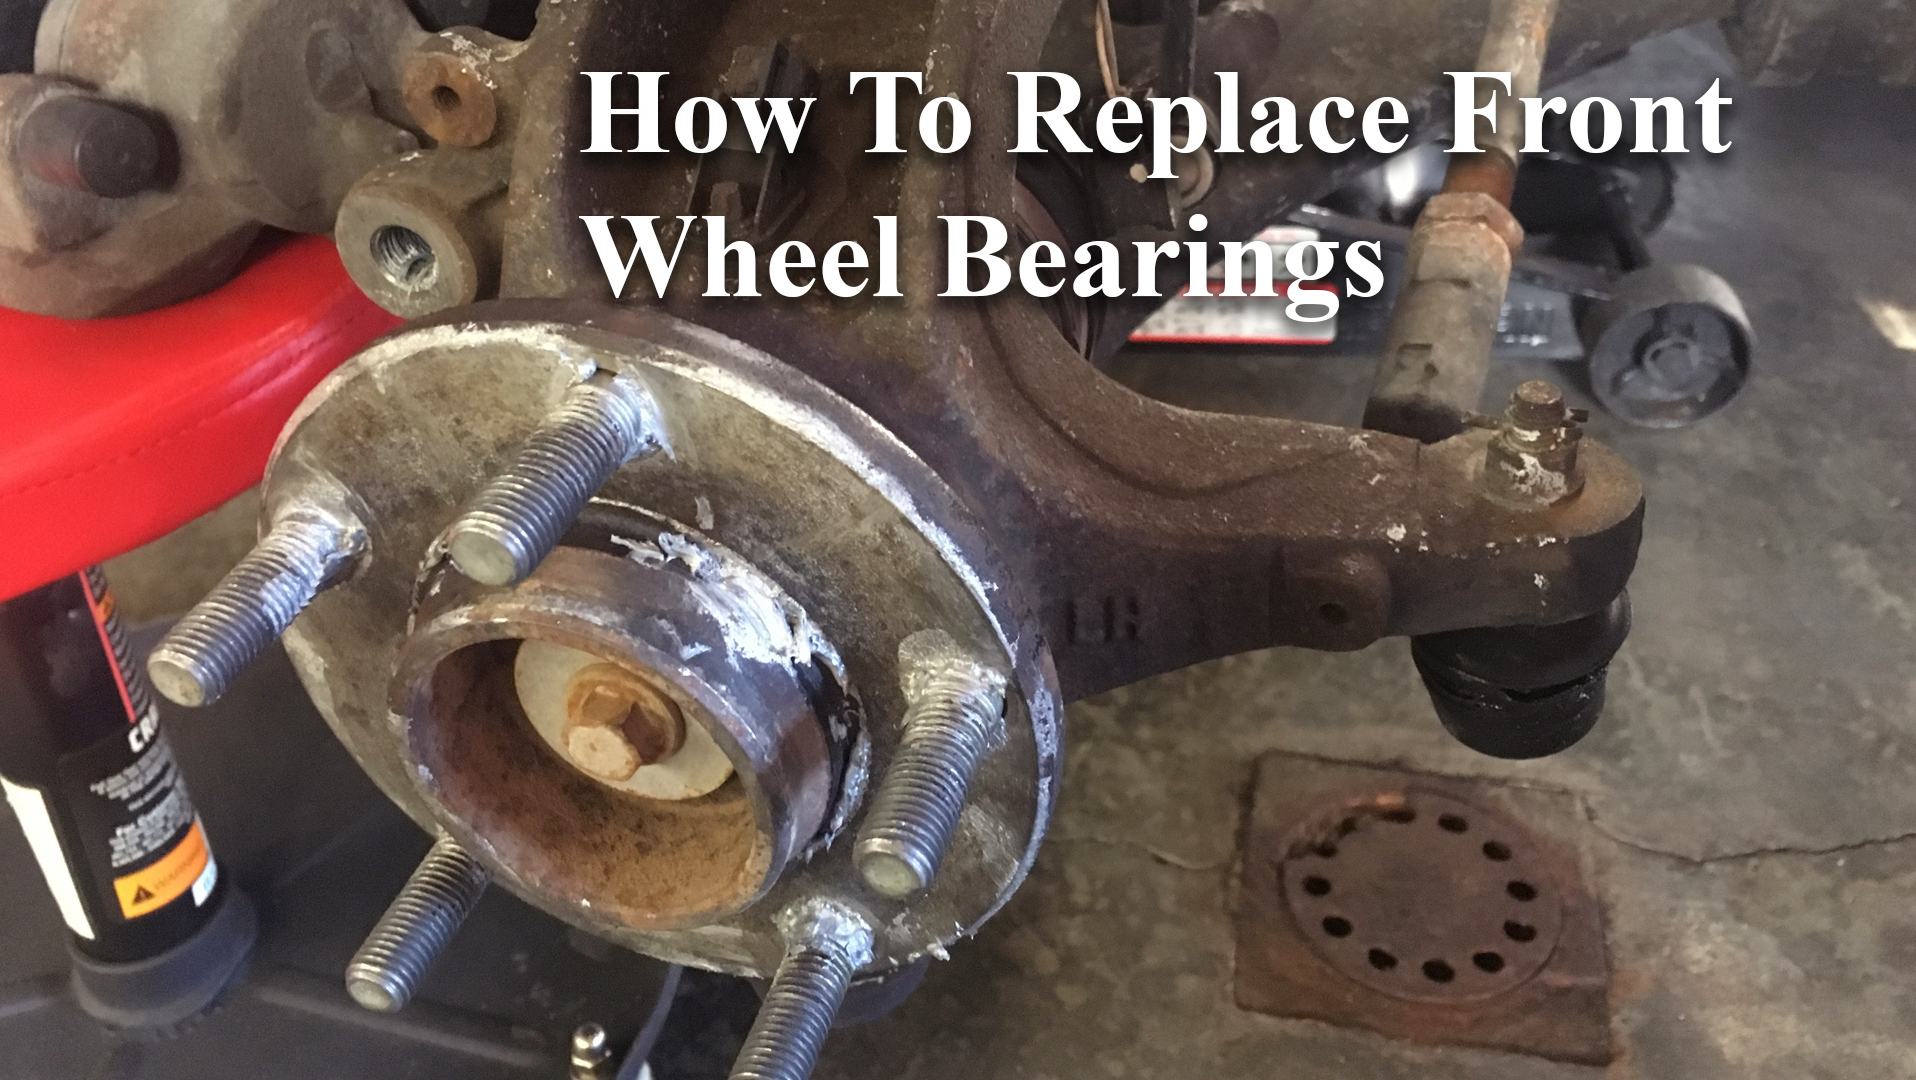 How To Change Wheel Bearing Hub Assembly – 2004 Mazda 3 2.3L